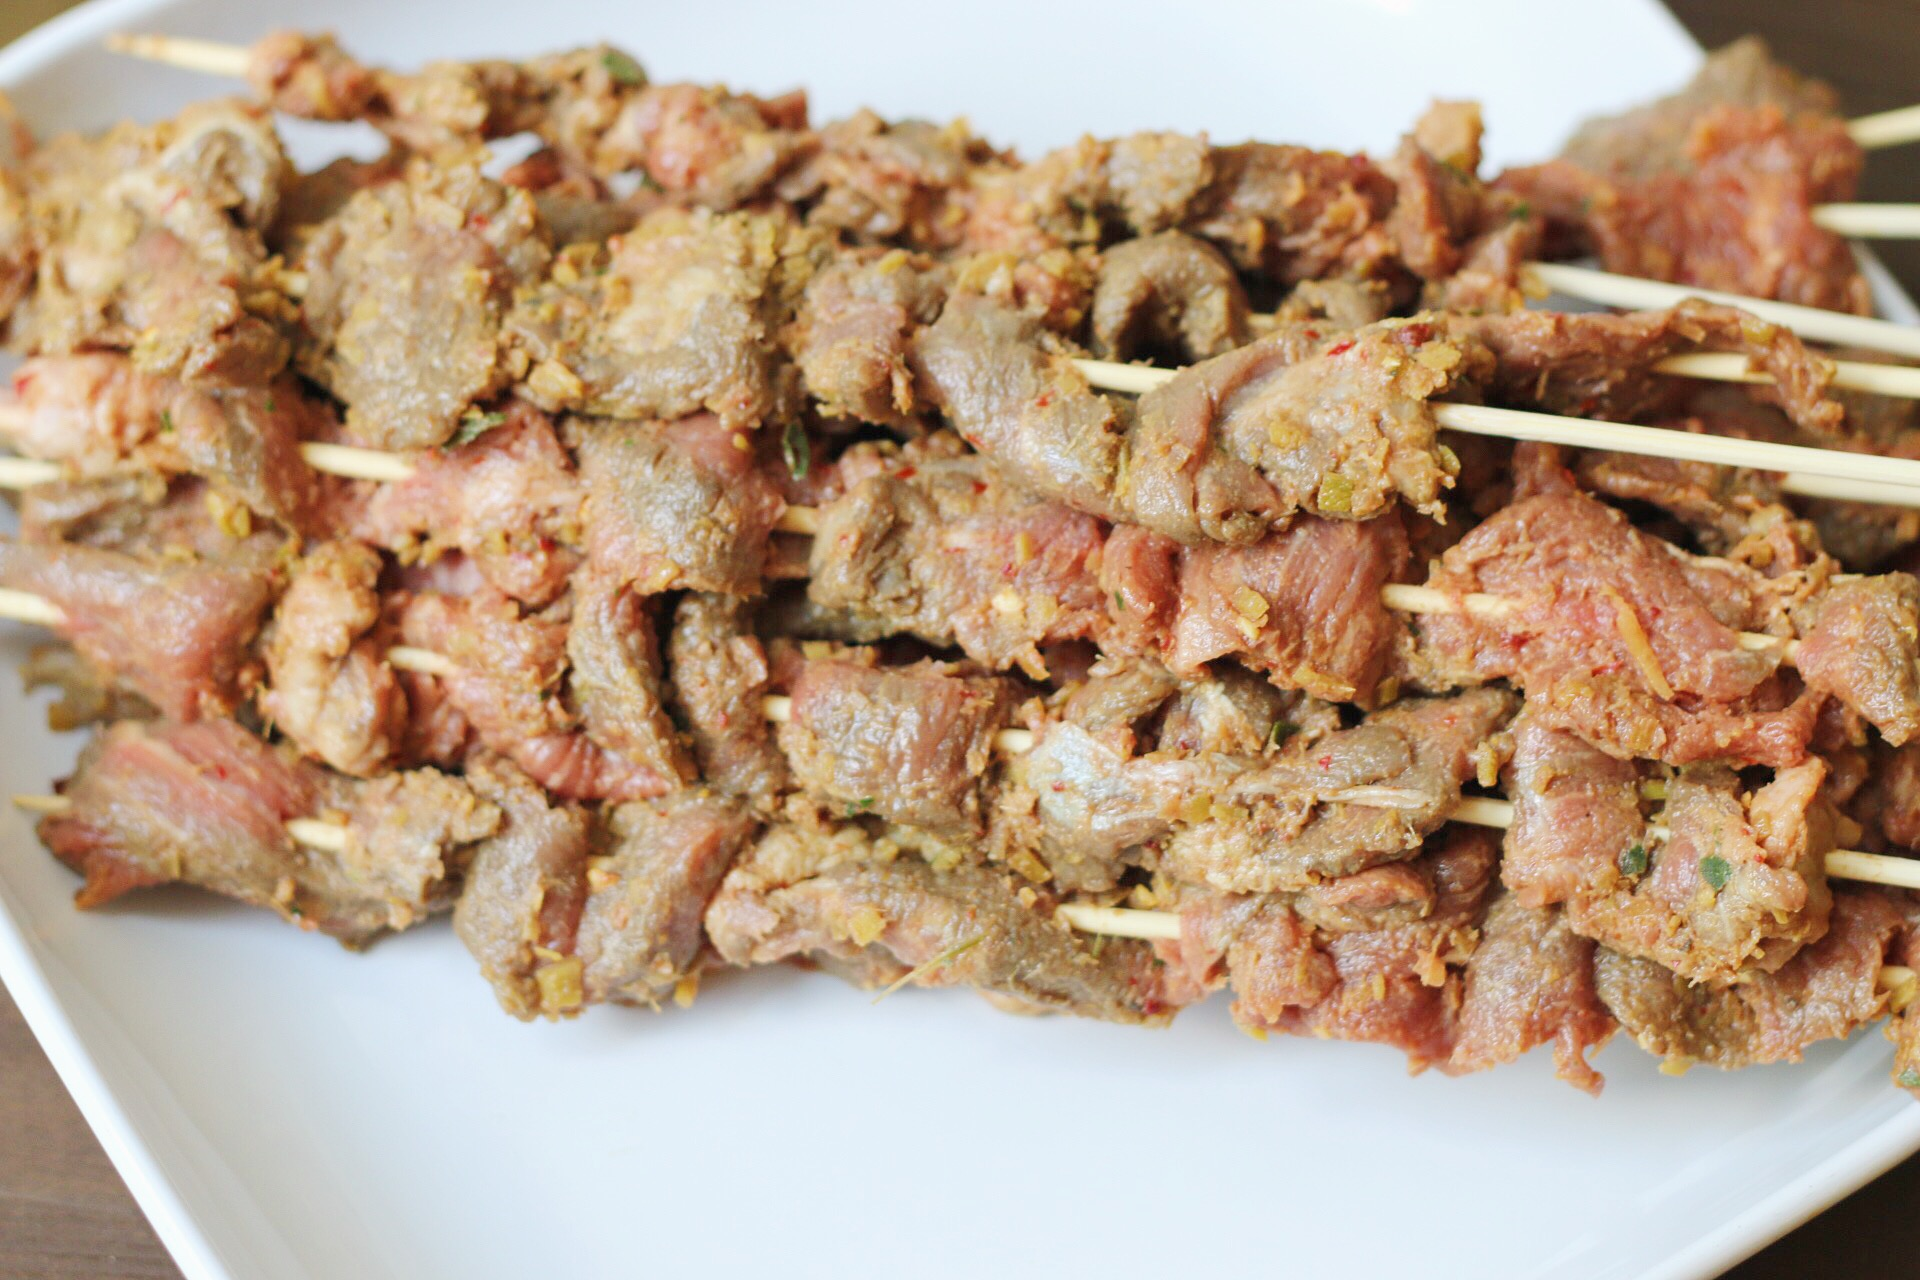 Skew a few pieces of meat on each stick. You want your meat to have enough space and be flatten so it can grill evenly.